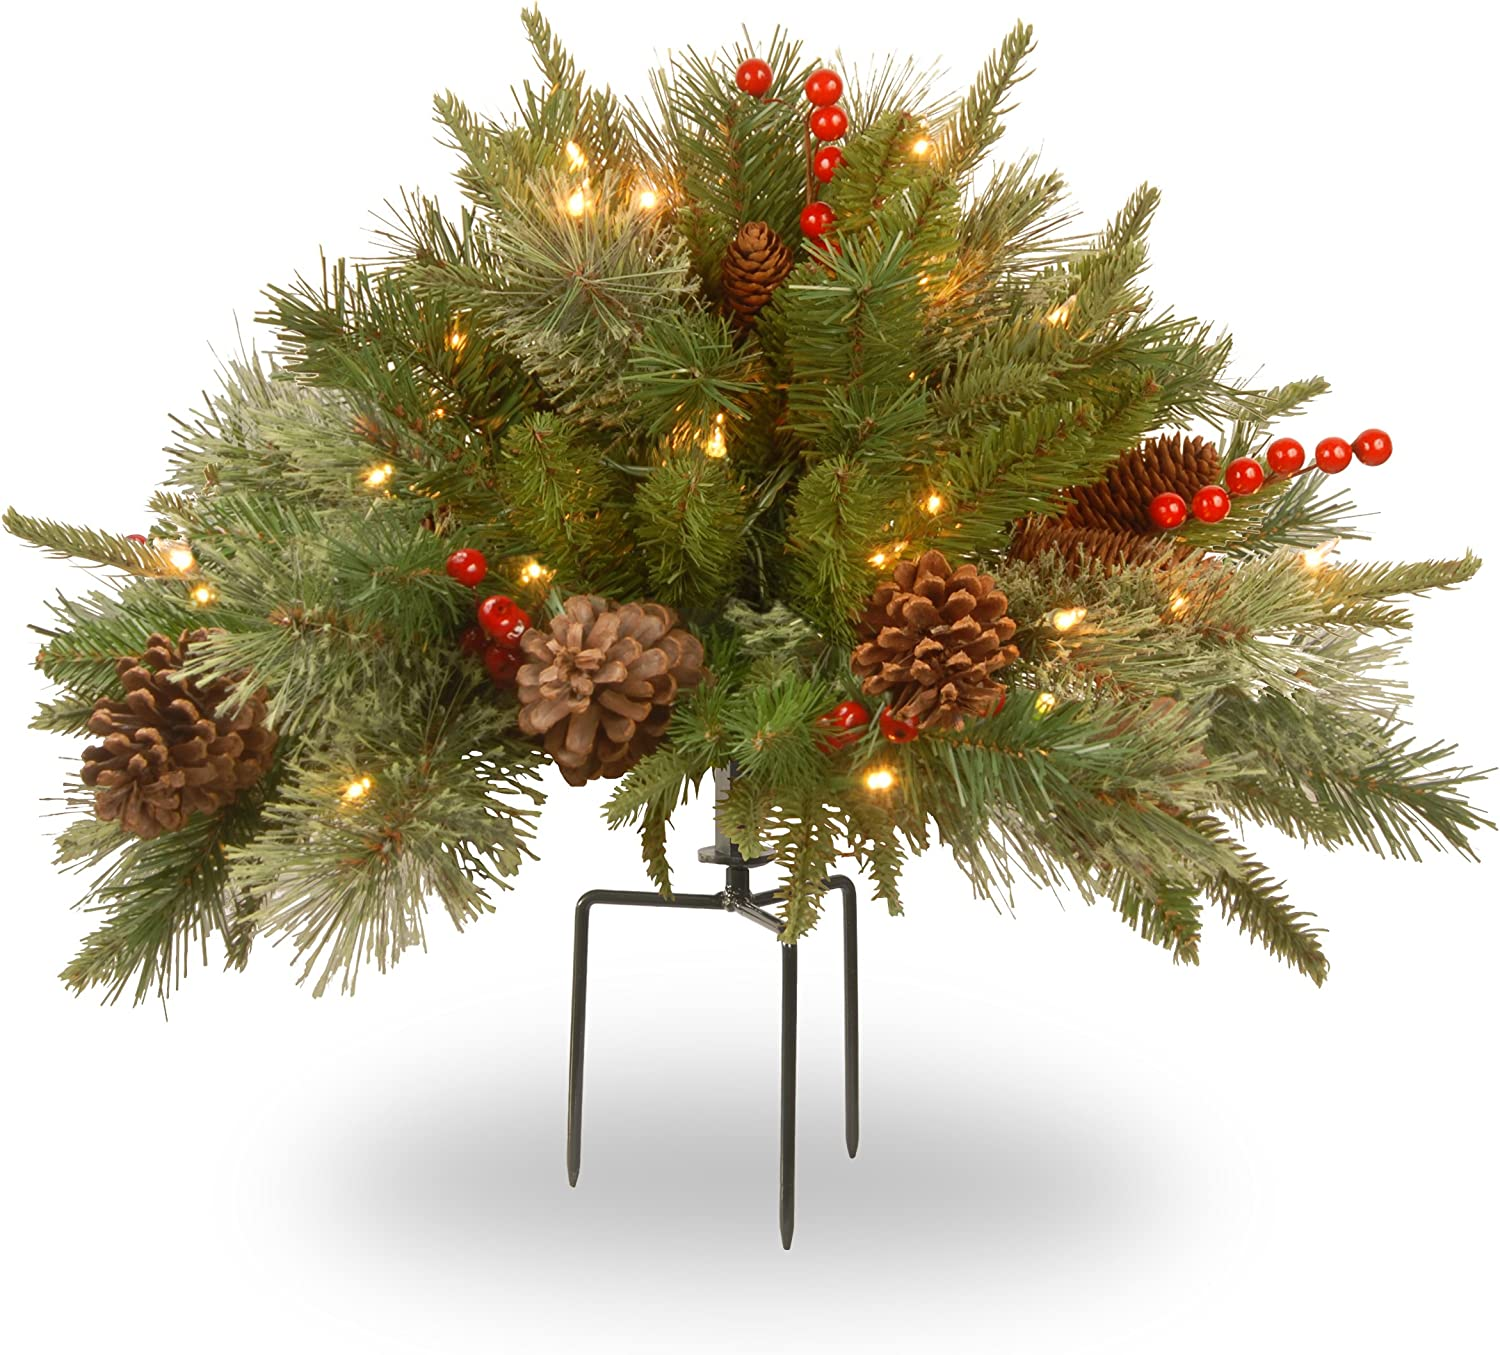 National Tree Company 'Feel Real' Pre-lit Artificial Christmas Urn Filler | Flocked with Mixed Decorations and Pre-strung LED Lights with Stand | Colonial - 18 Inch